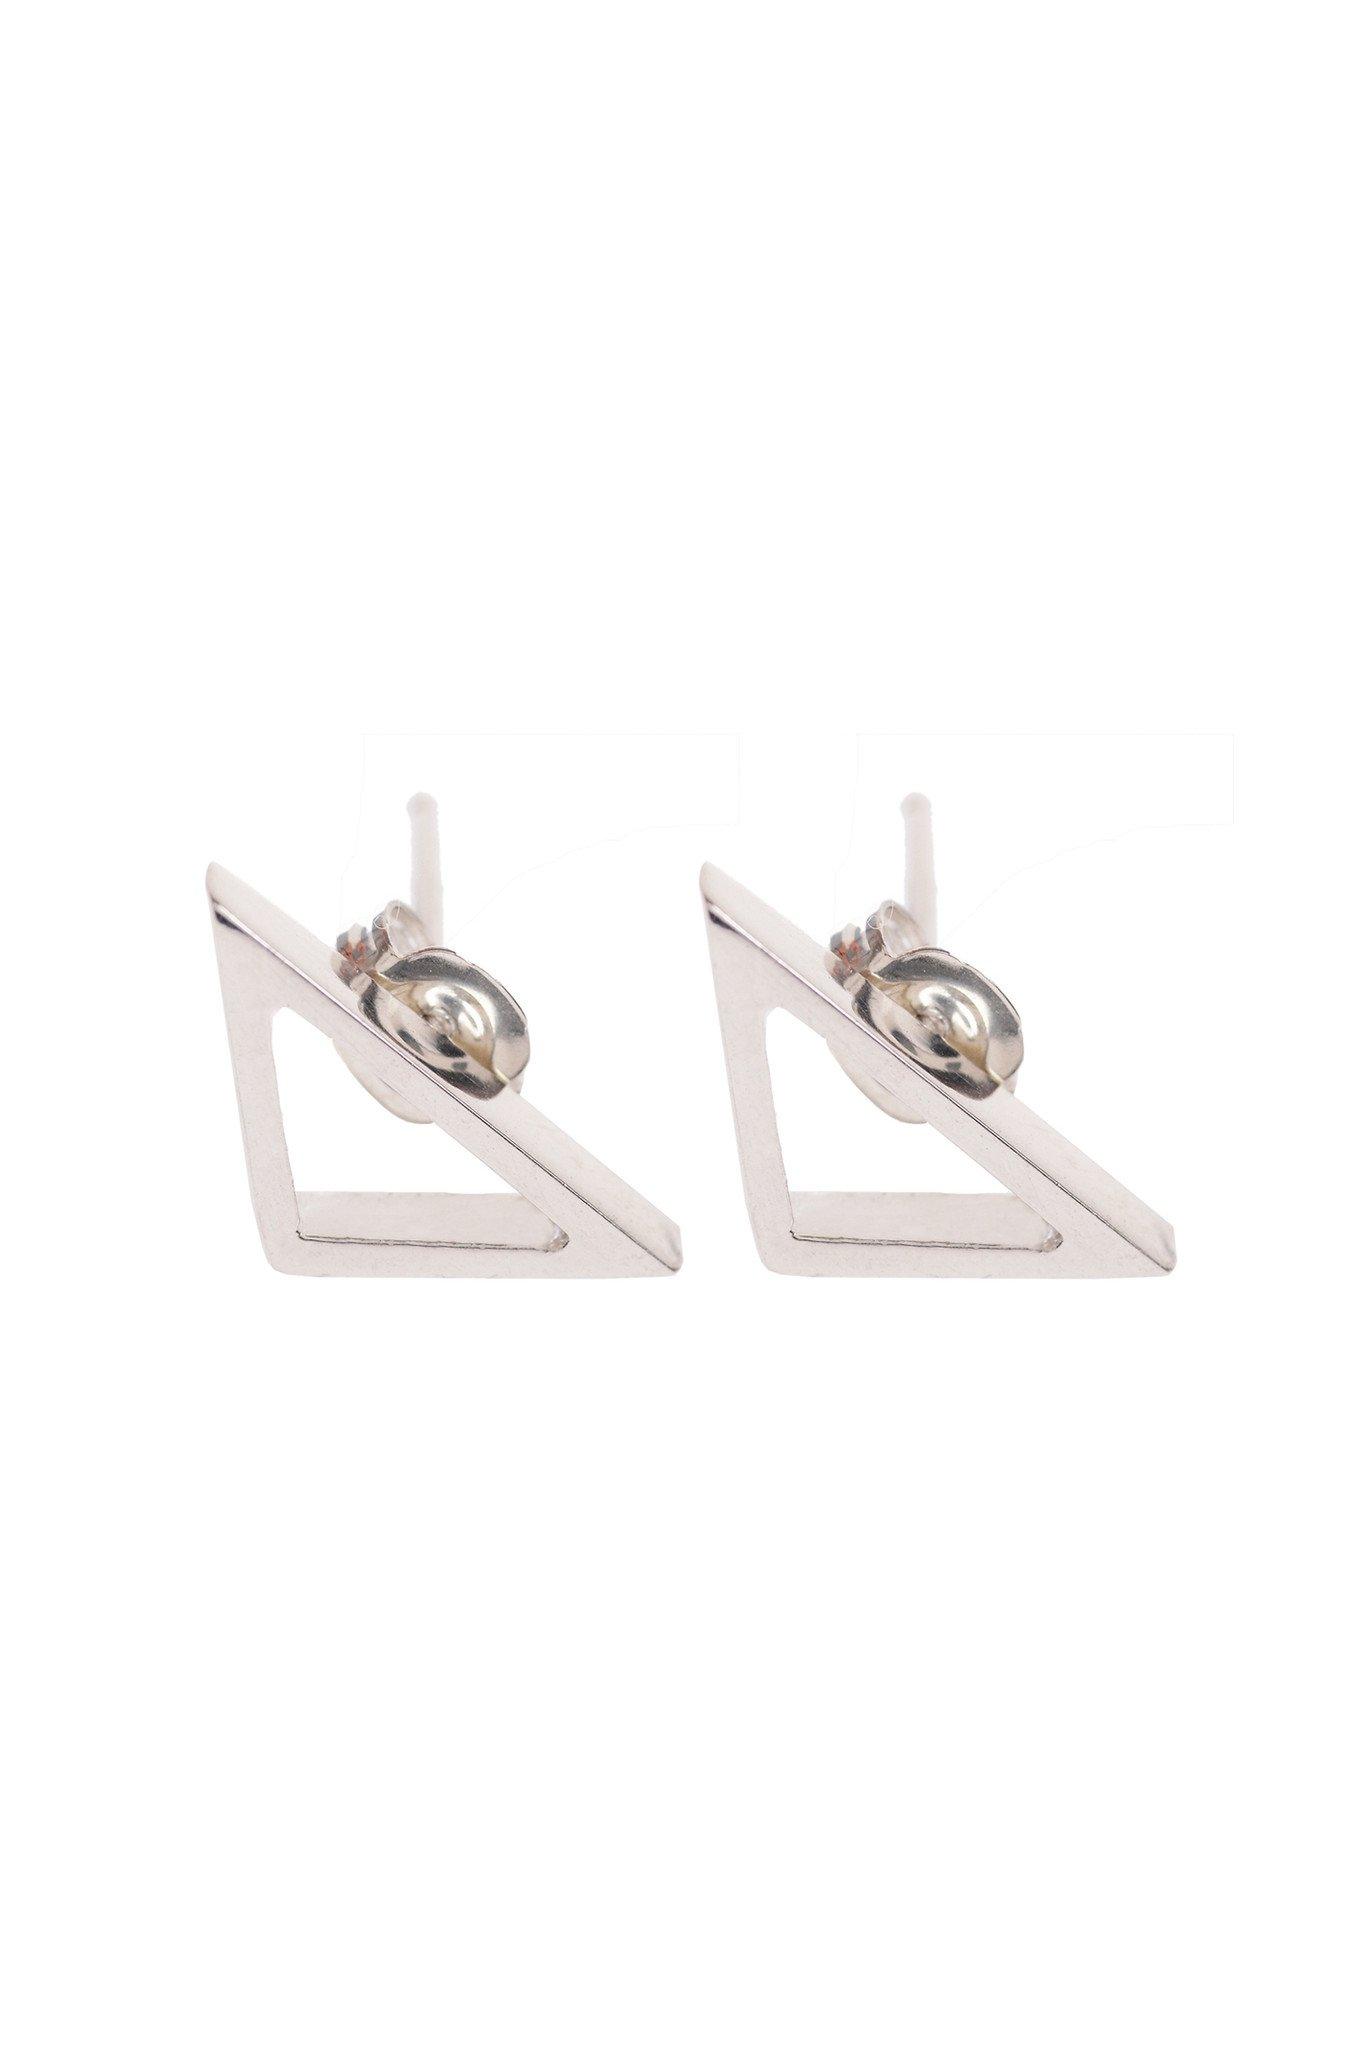 Got Some Front, Silver Studs by Sally Lane Jewellery on curated-crowd.com